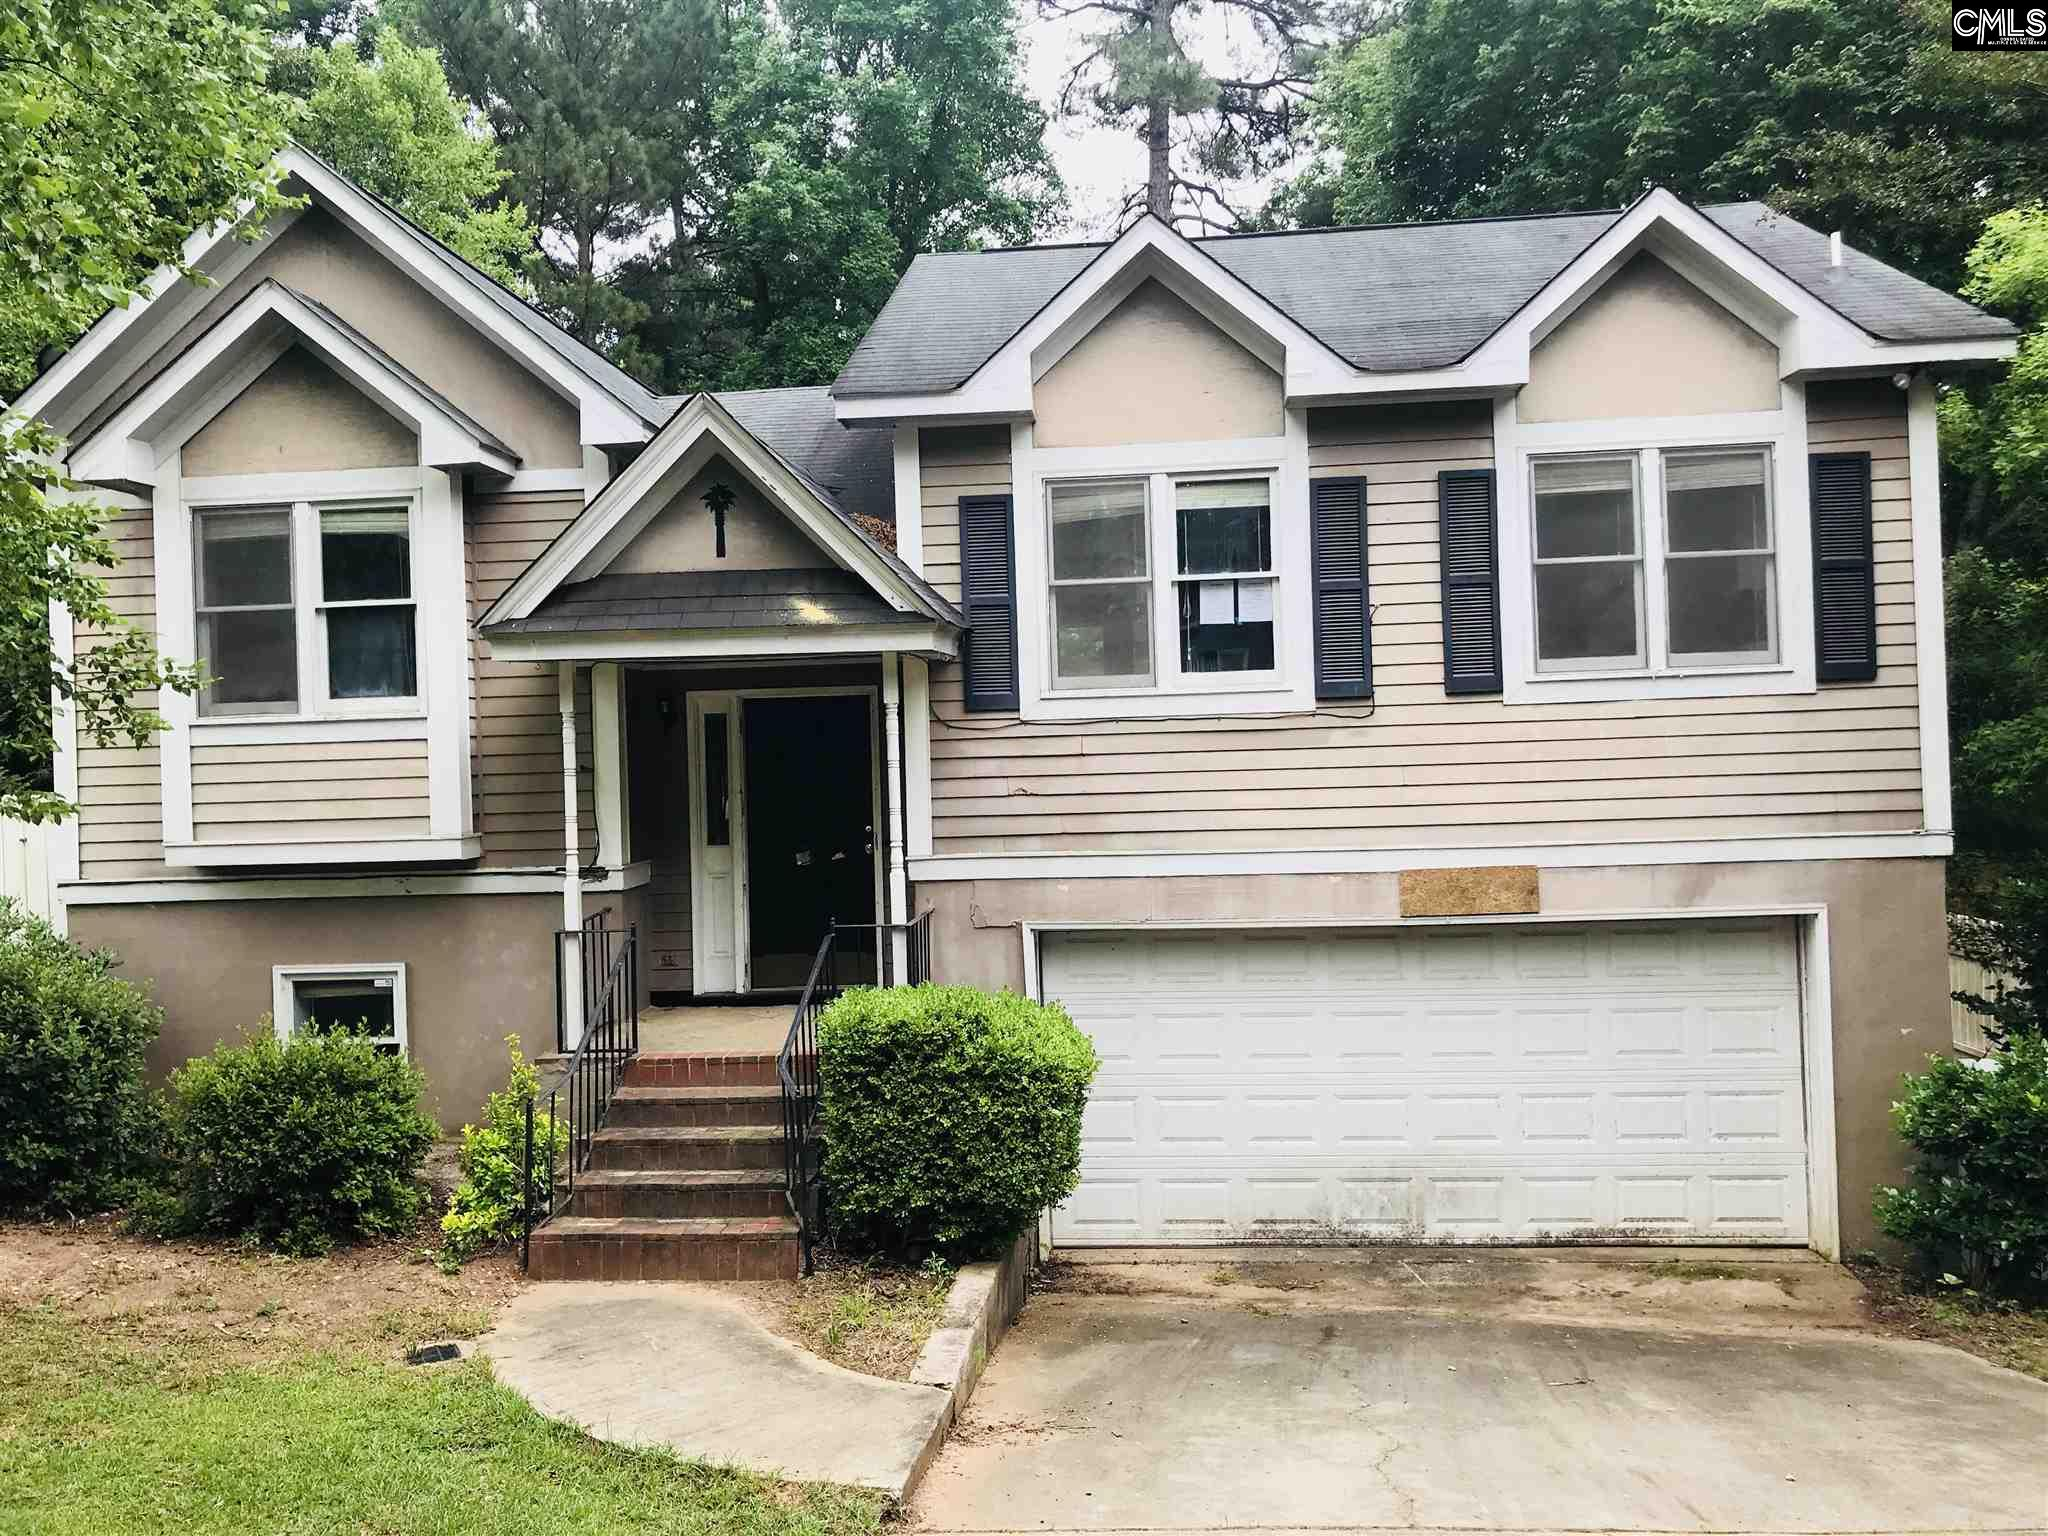 105 W Sparrowood Lexington, SC 29072